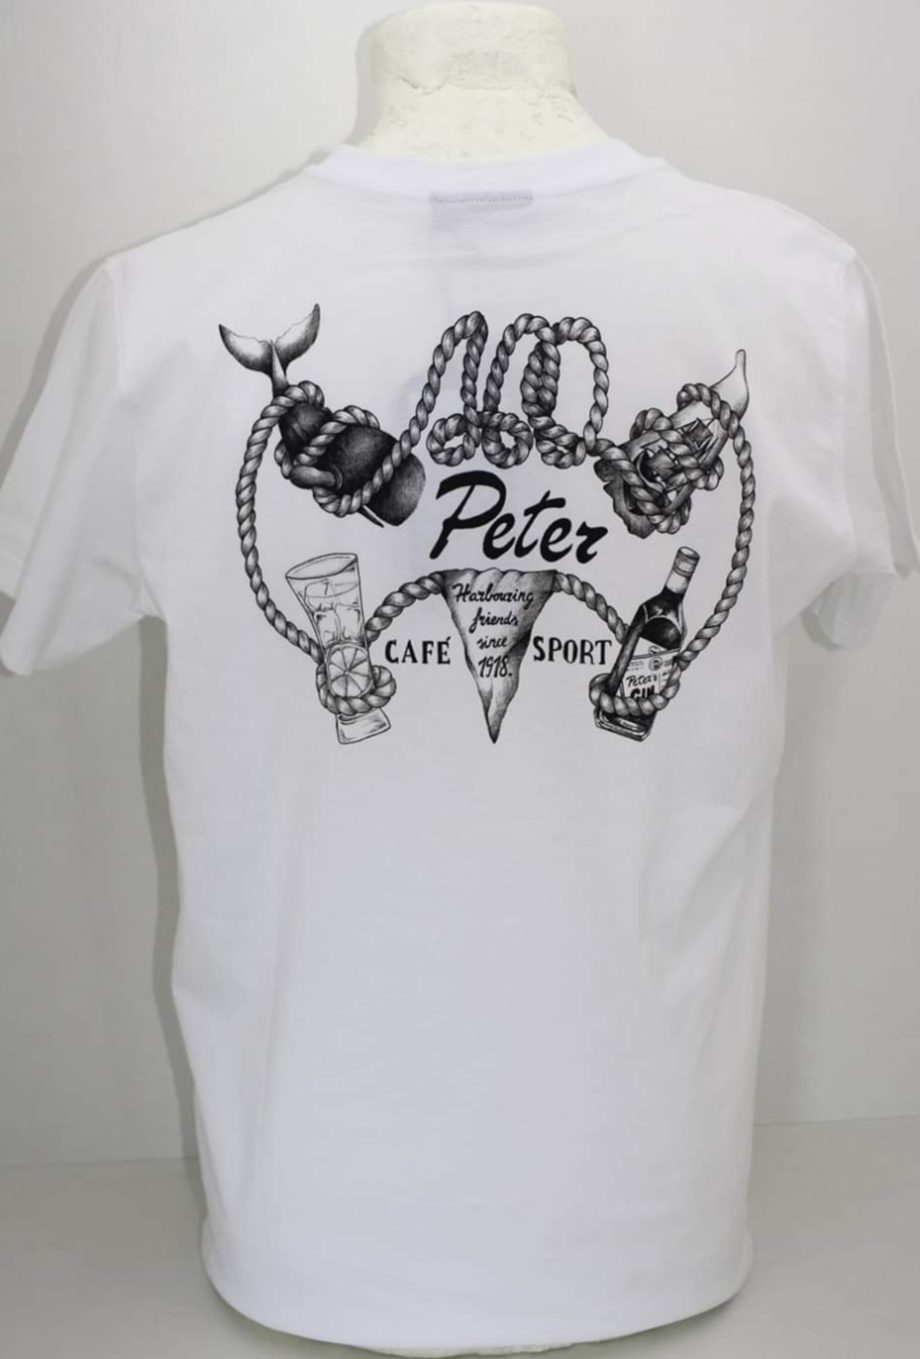 T-shirt 100 years Peter Cafe Sport